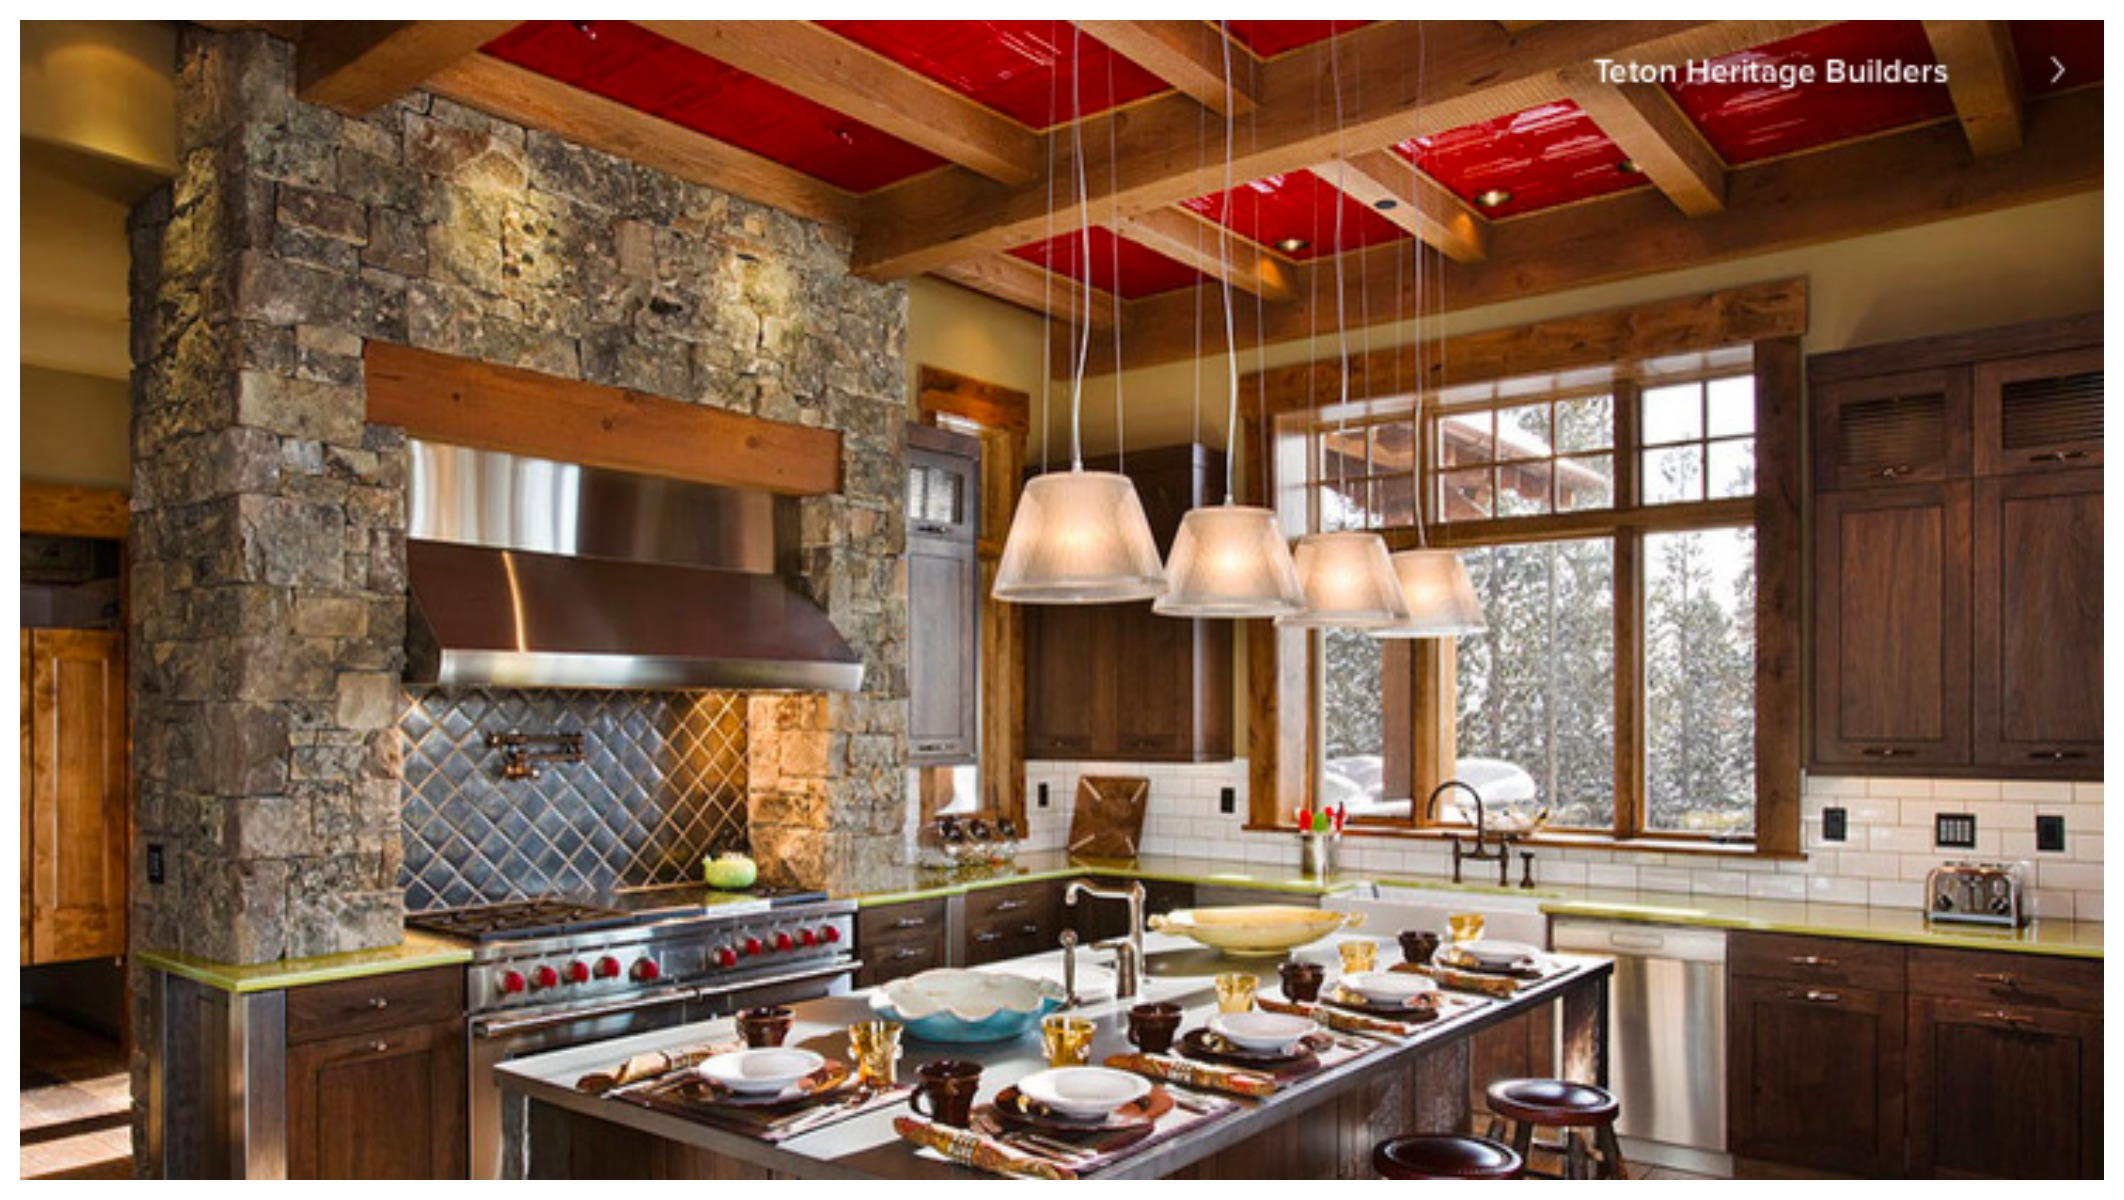 Residential ceilings archives affordable ceiling tile decor kitchen with red ceilings red ceiling decoration dailygadgetfo Image collections